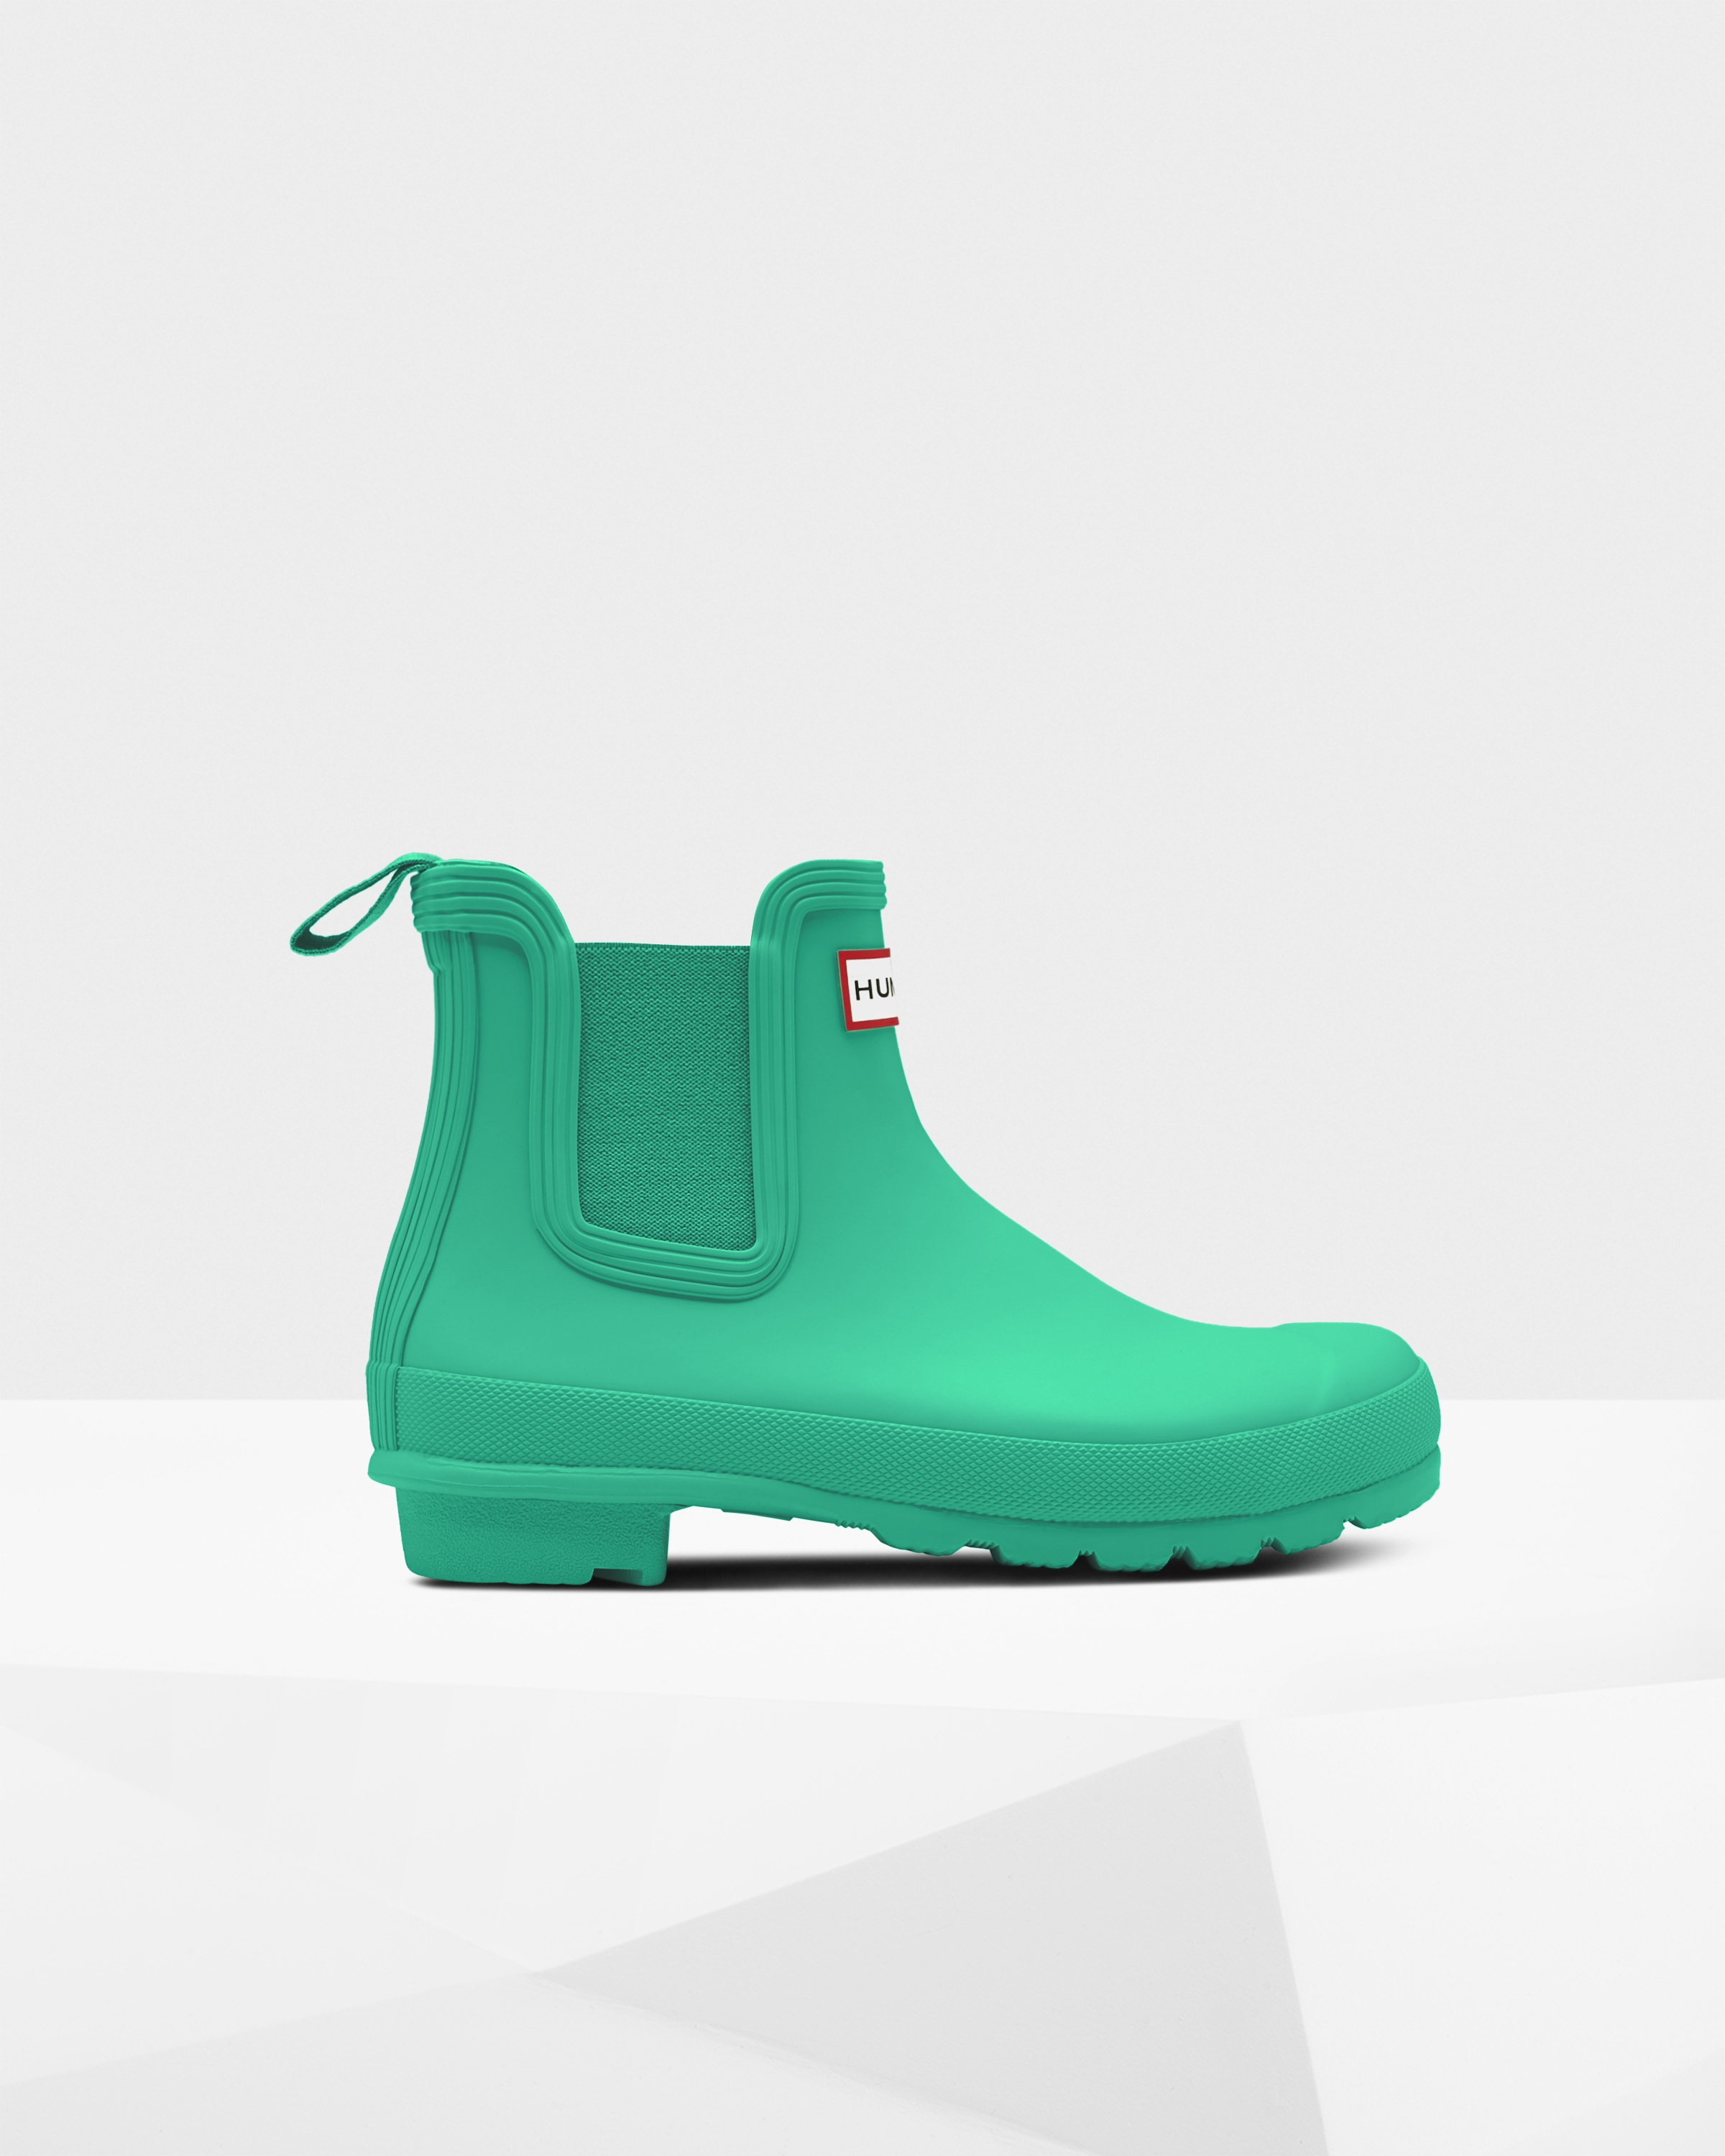 7c6d8ab4d35 Womens Green Chelsea Boots | Official Hunter Boots Store